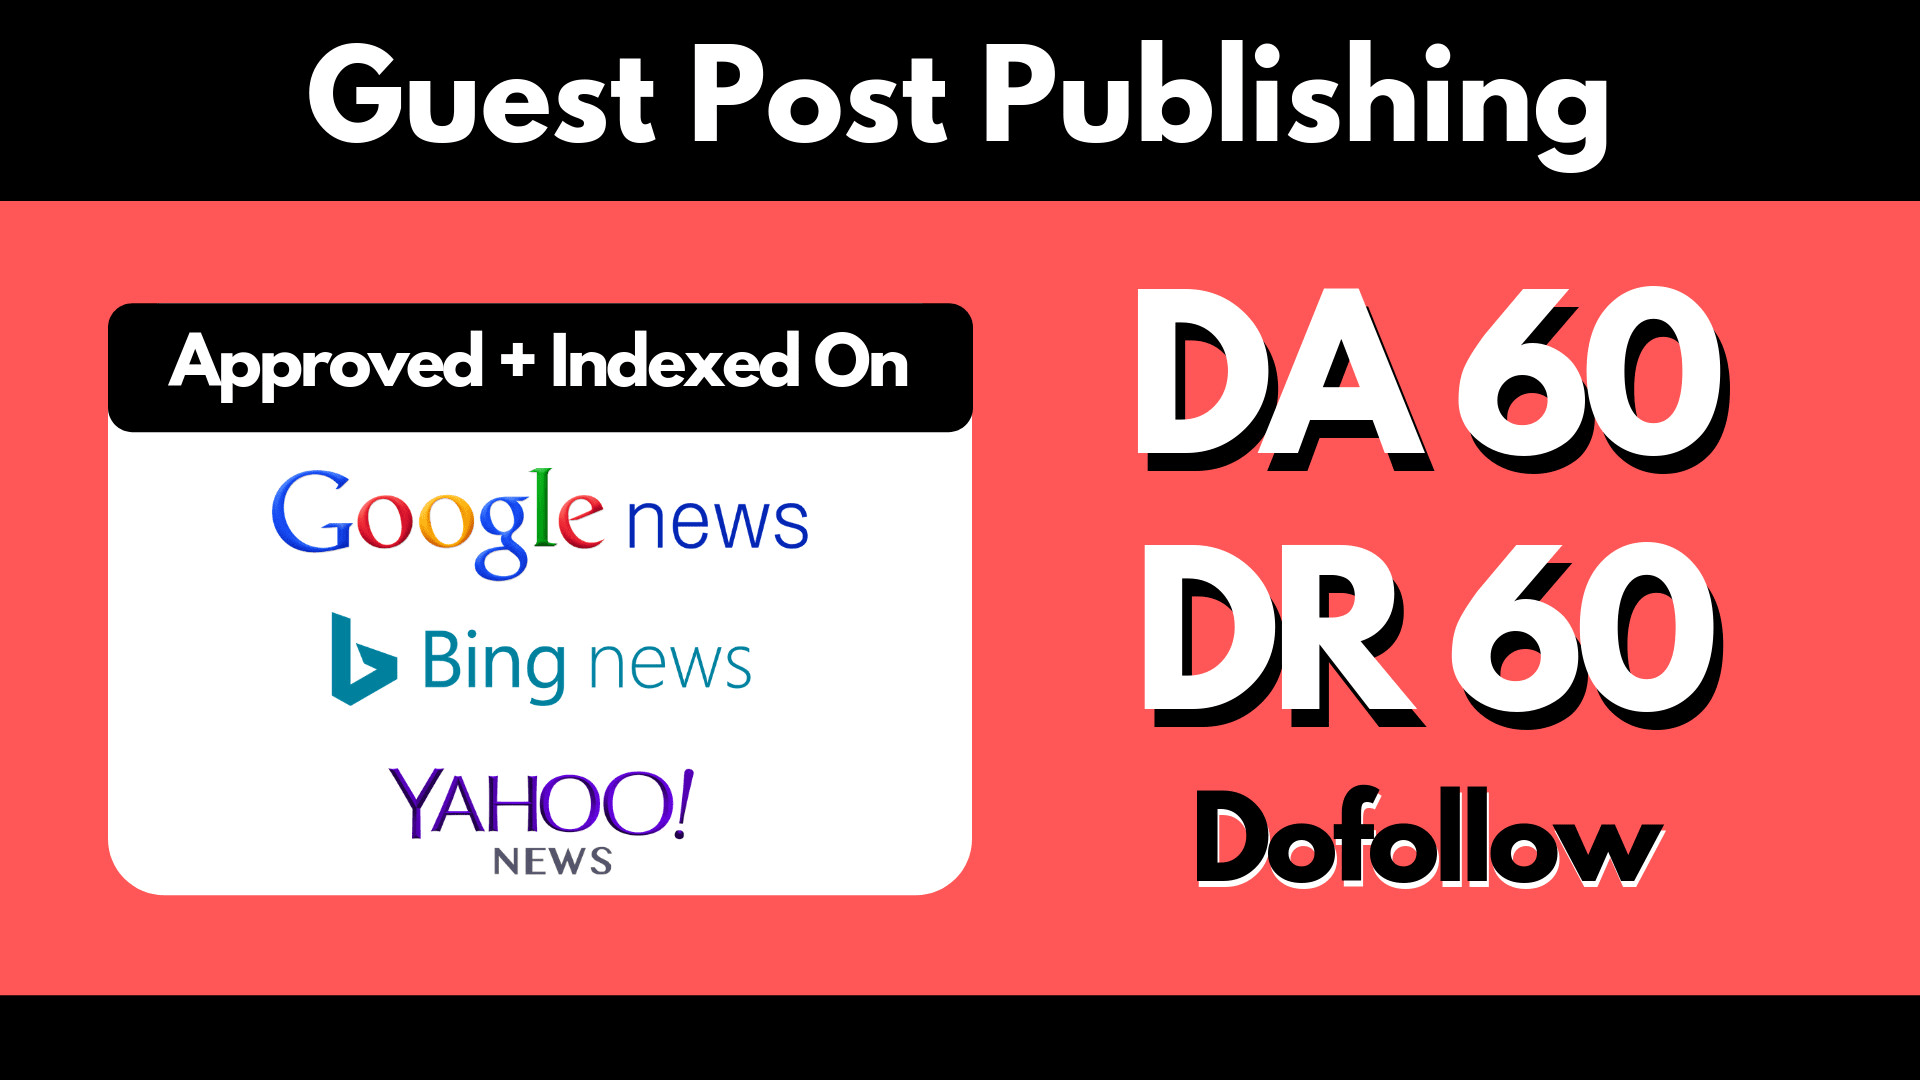 Guest post on Google news approved DA60 DR 60